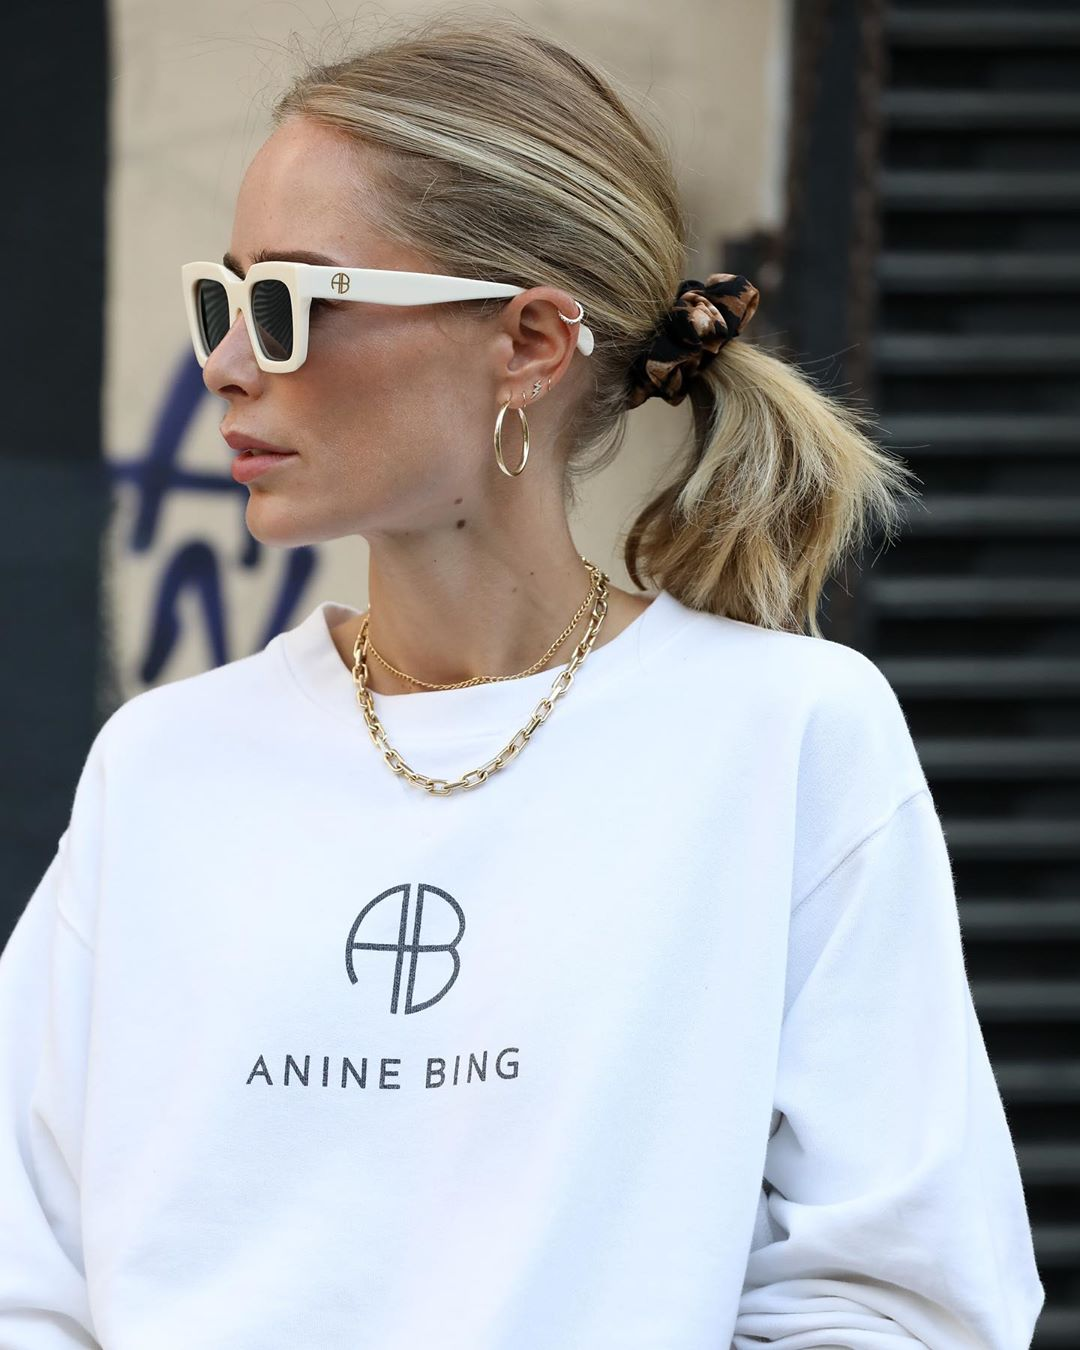 Anine Bing: 10 must-haves από την γκαρνταρόμπα του αγαπημένου μας style icon